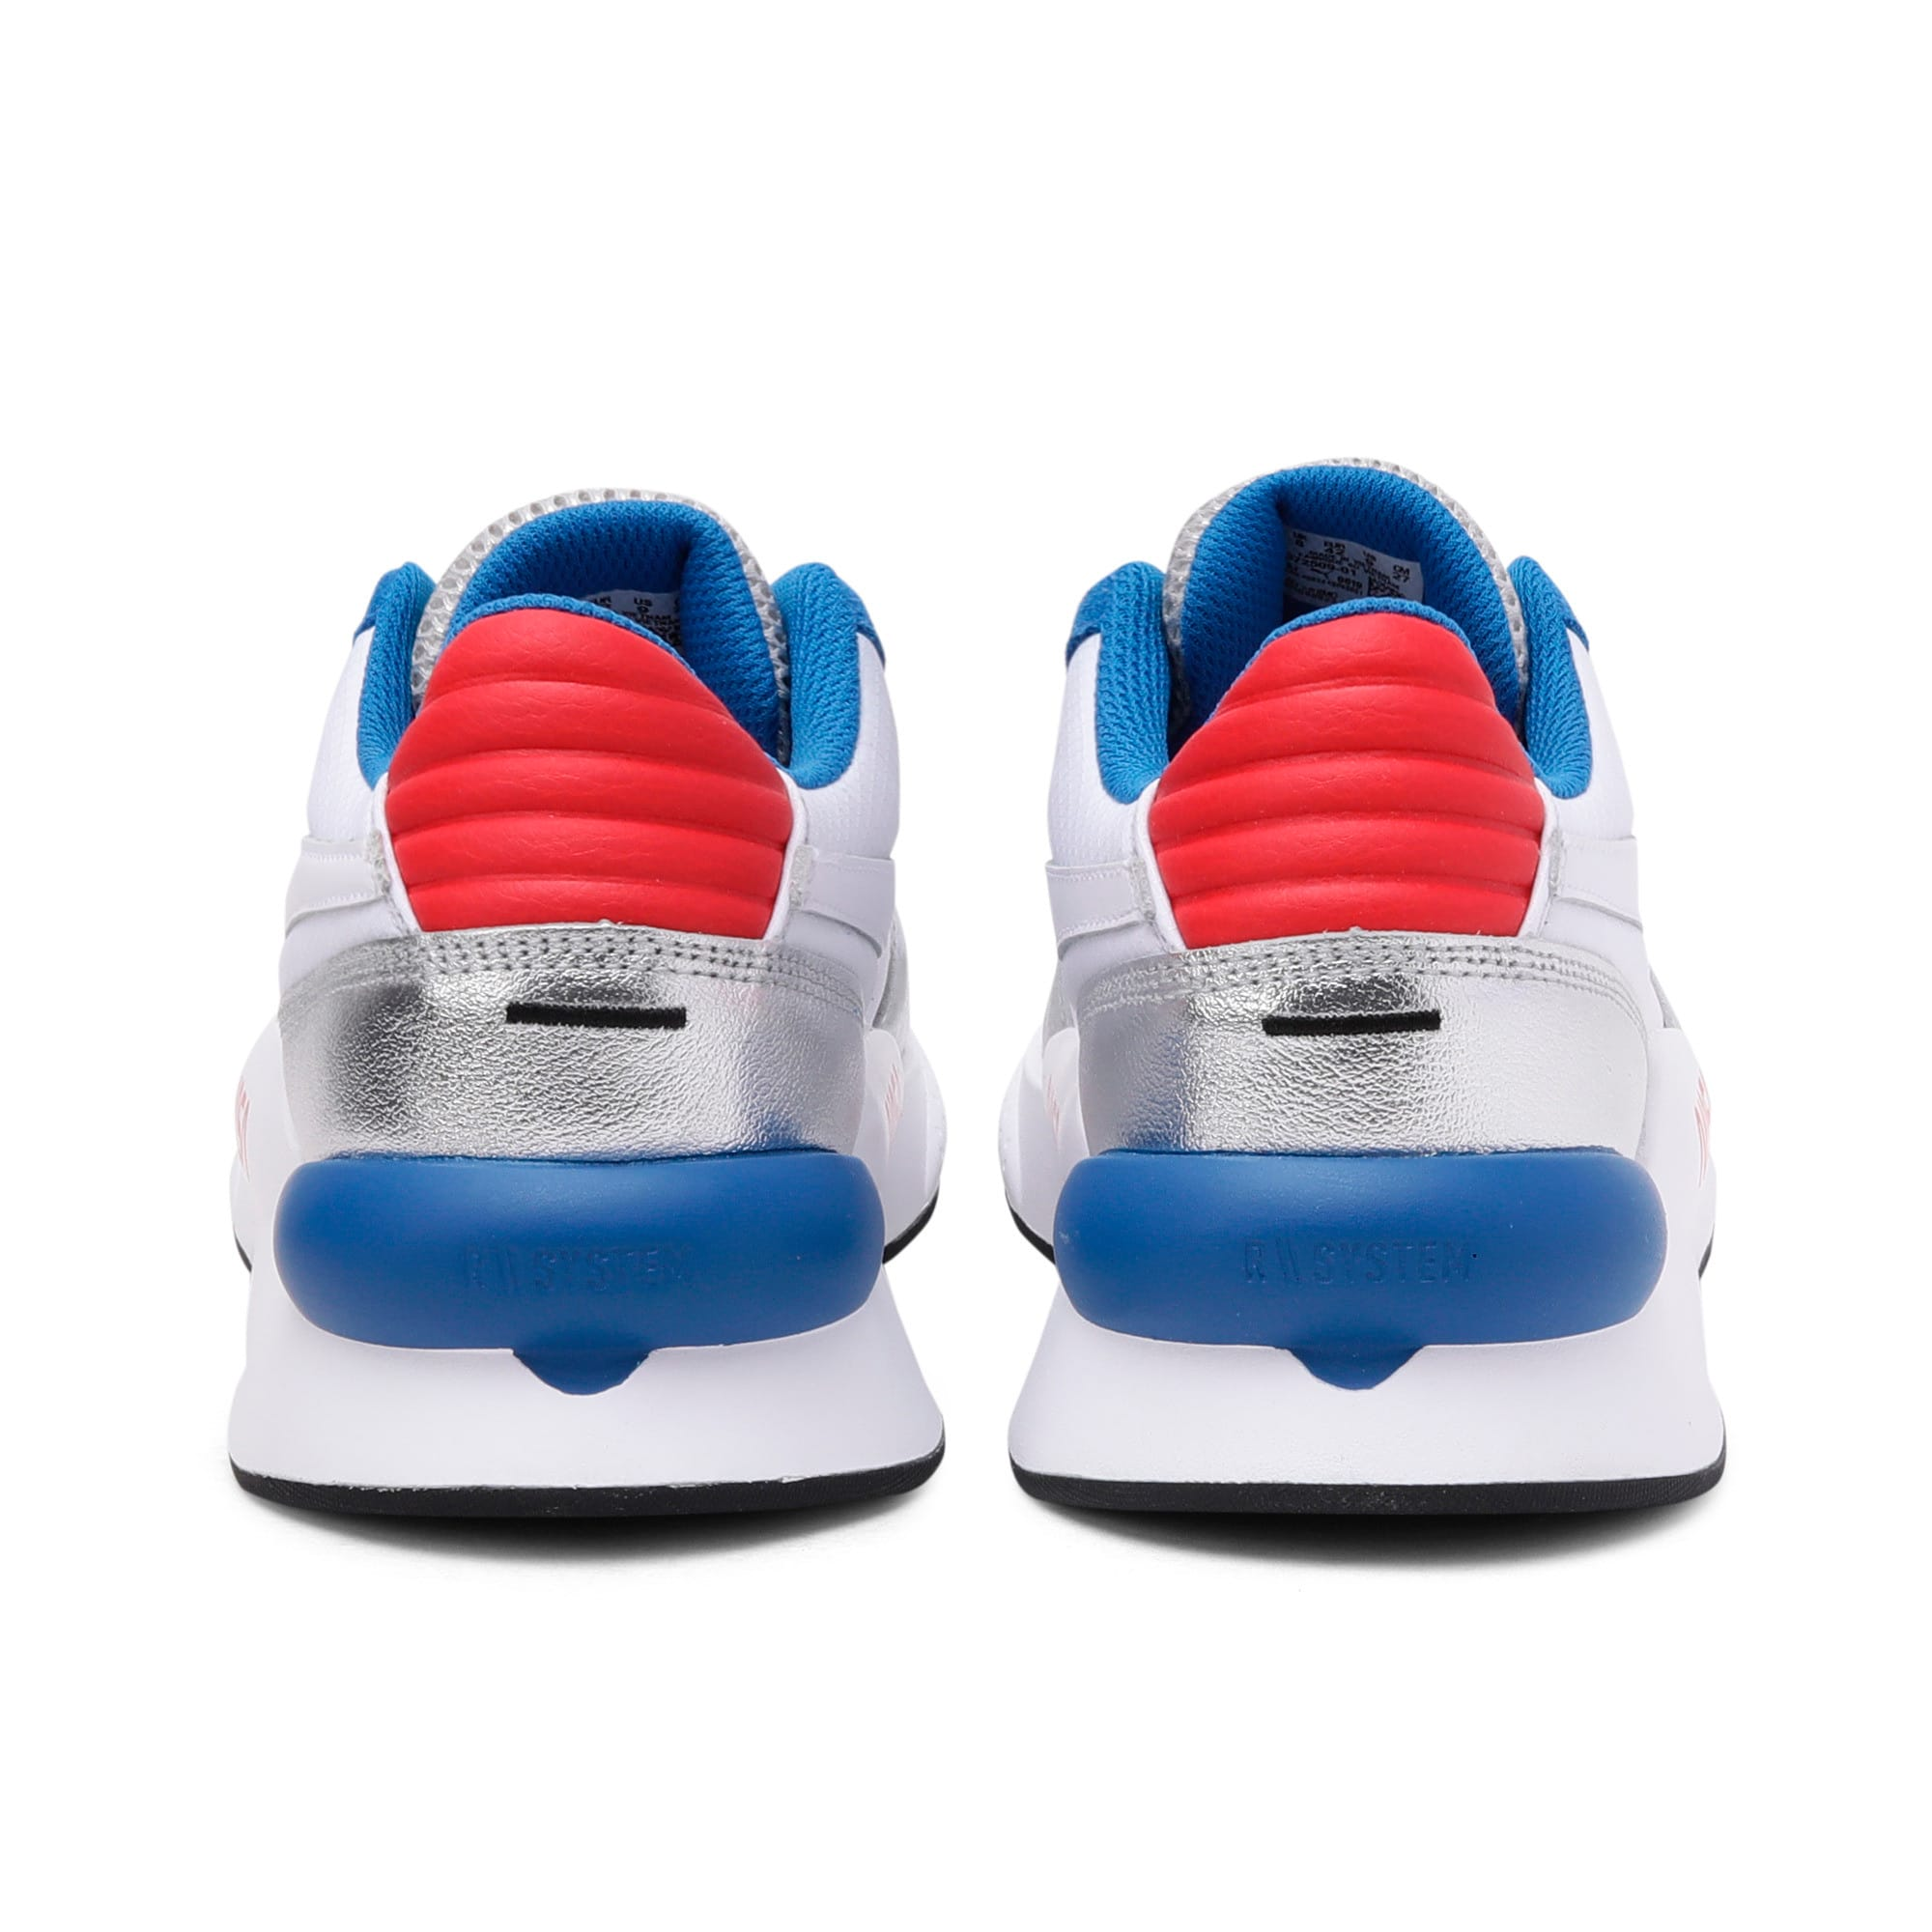 Thumbnail 3 of RS 9.8 Space Explorer Trainers, Puma White-Puma Silver, medium-IND